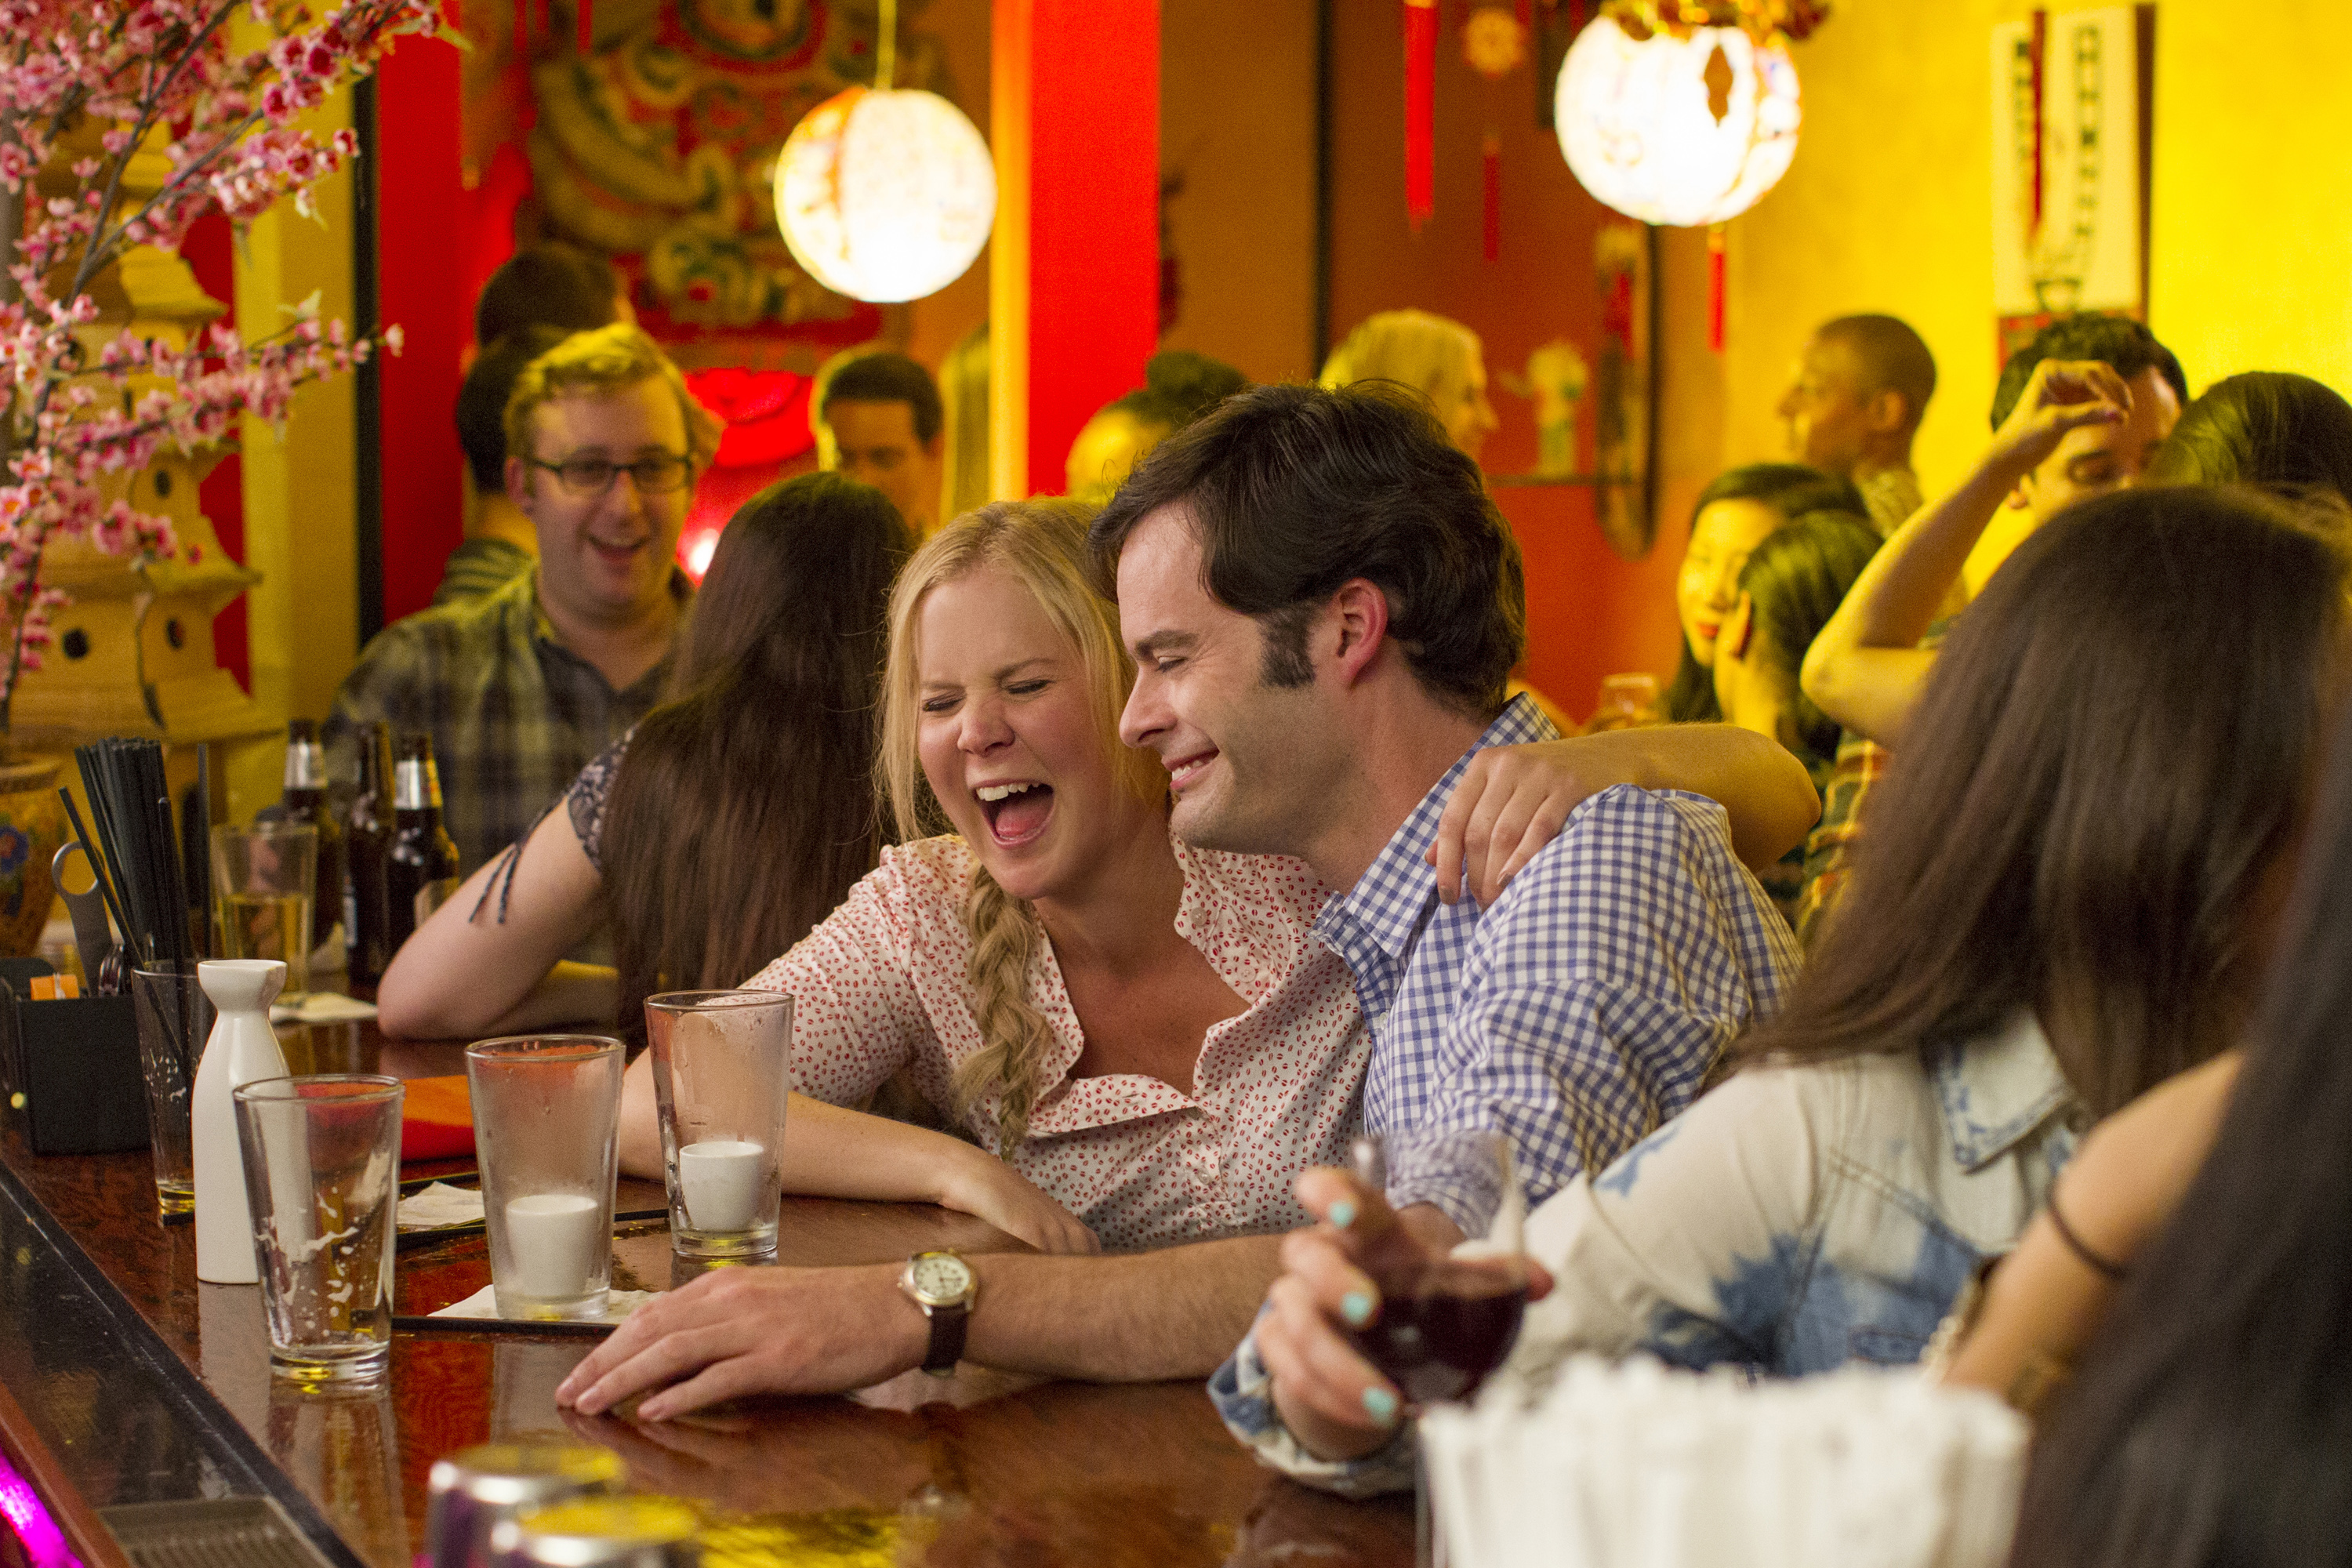 'Trainwreck' is R-rated riot by Apatow, Schumer